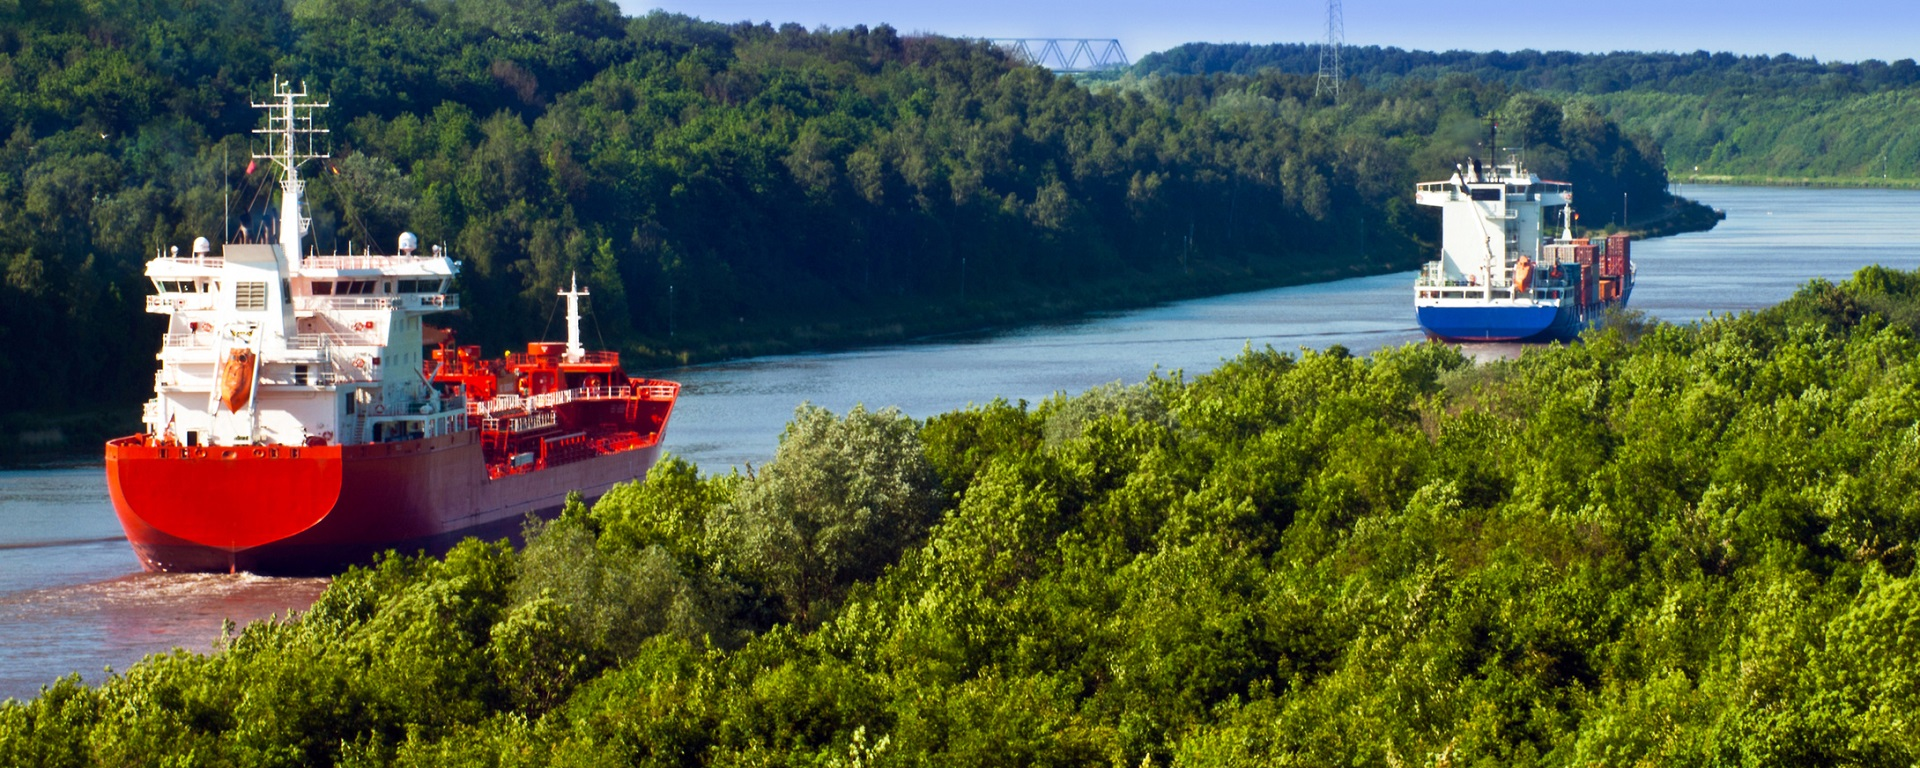 One of the measures stipulated in the FTIP is the deepening of the Kiel Canal. Source: Fotolia/PhotoSG